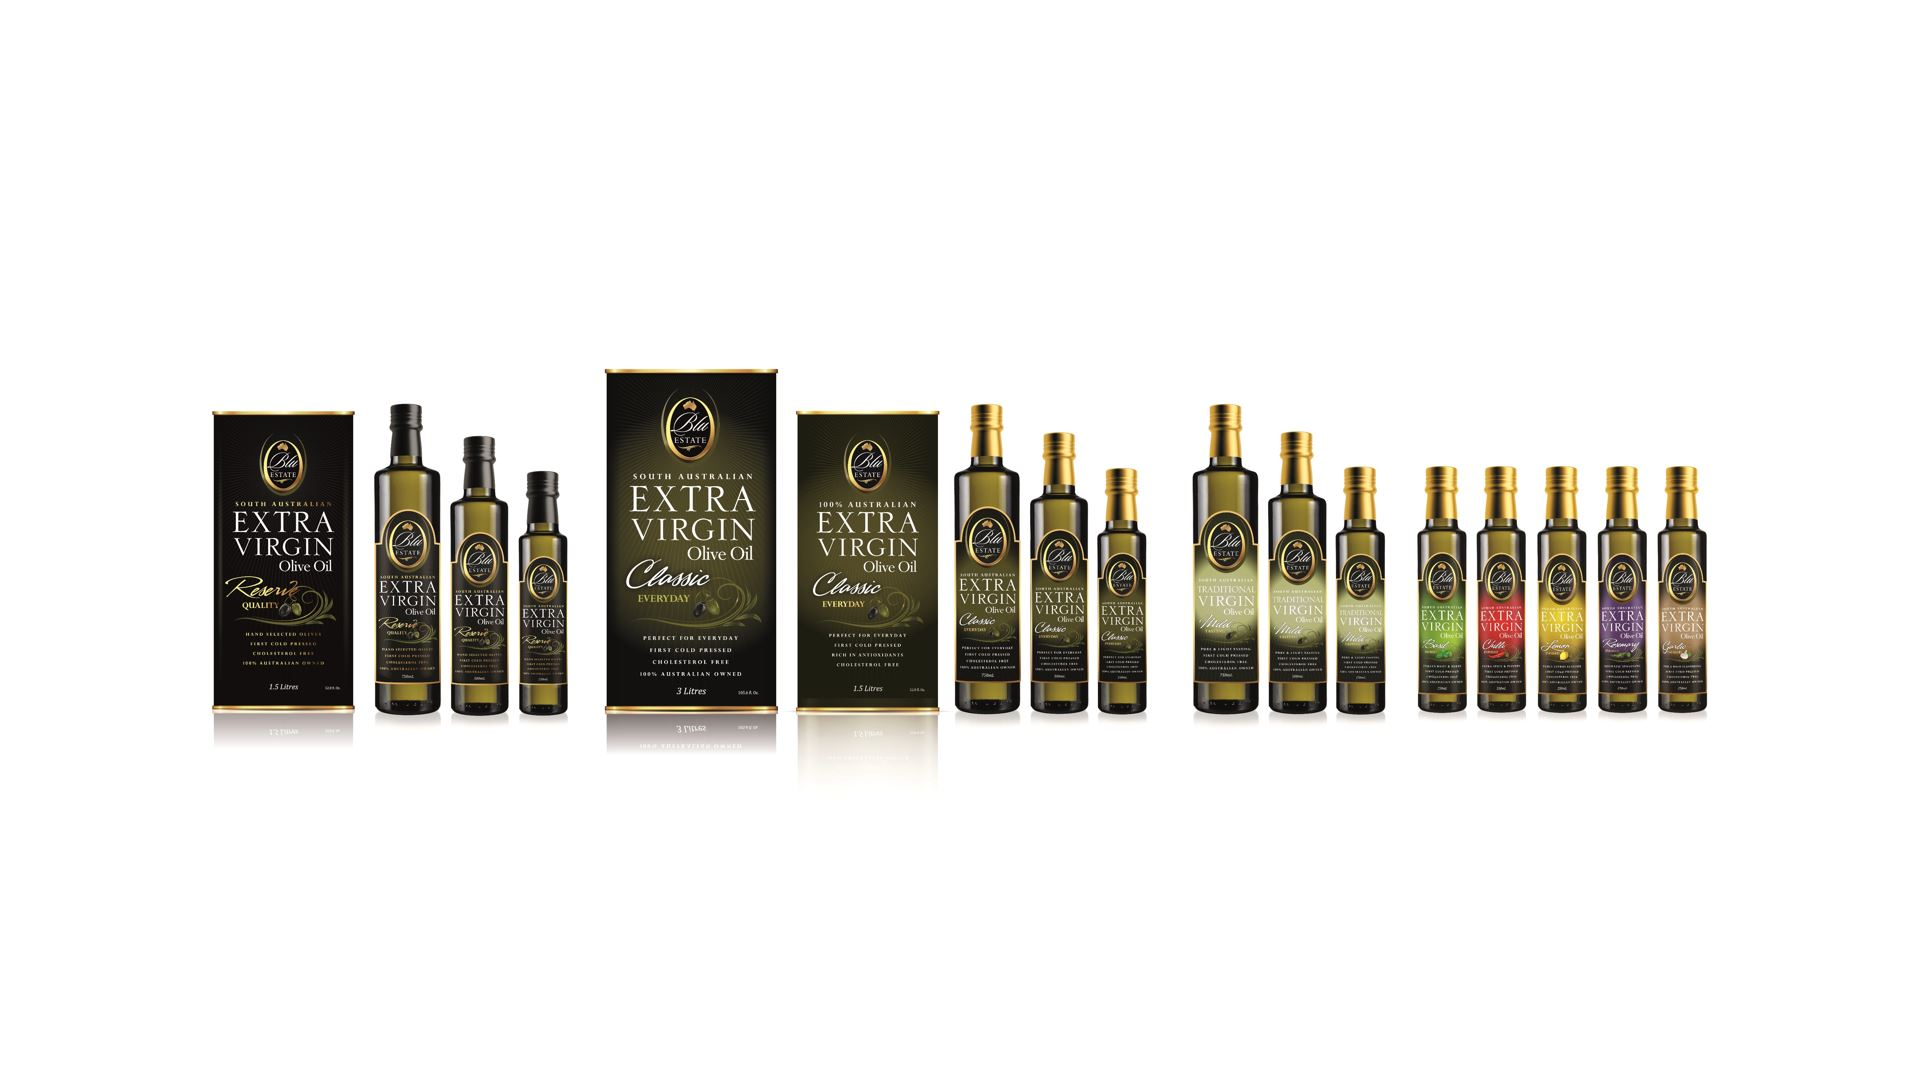 Our online exclusive gift packs - You may browse our broad range of oils from the comfort of your own home, have a read through the product descriptions to understand the tastes of each product.